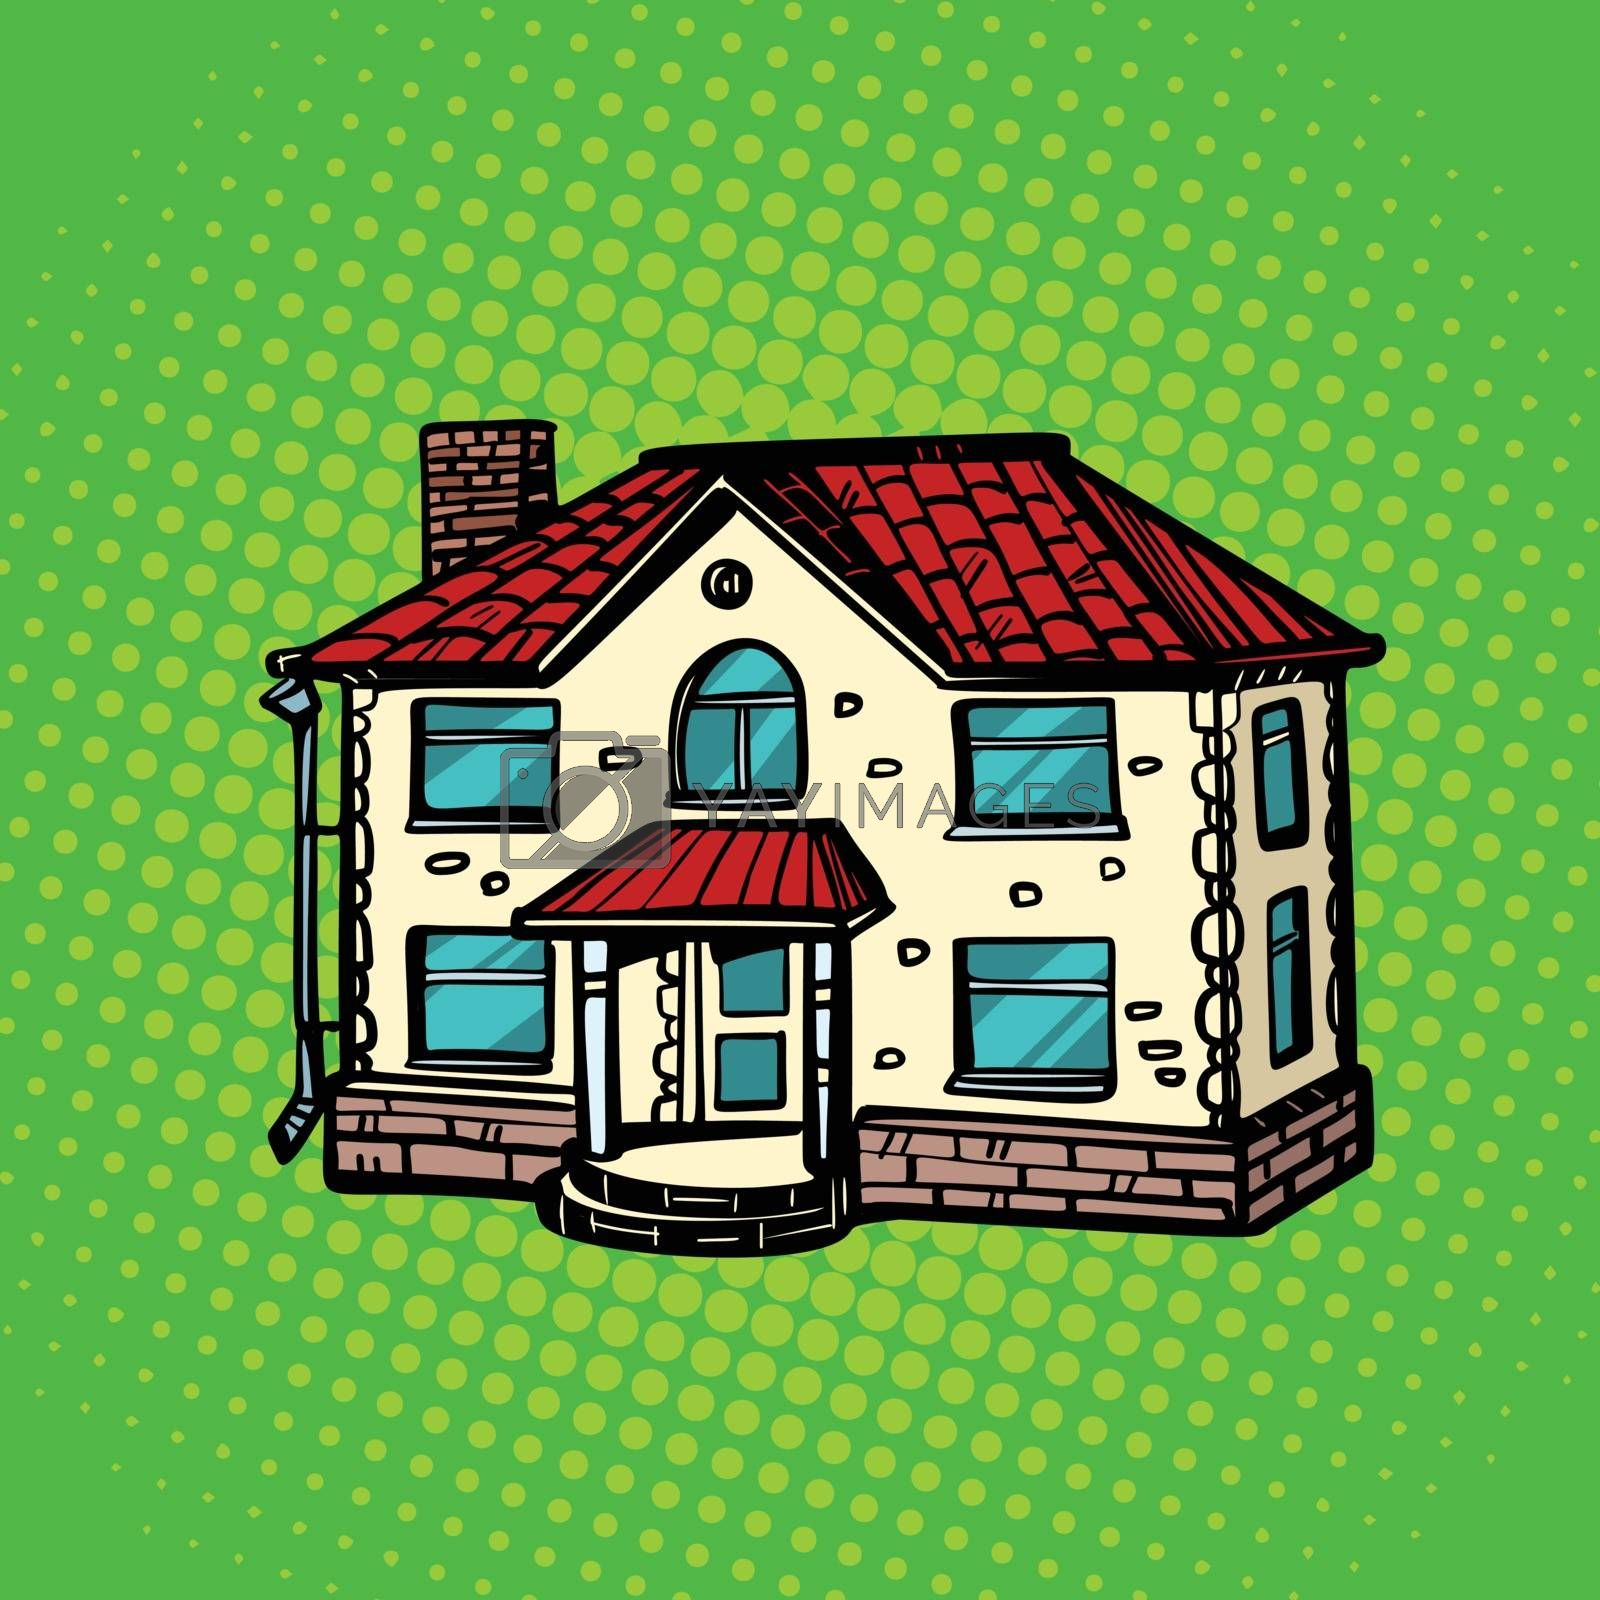 house real estate. Pop art retro vector illustration drawing kitsch vintage